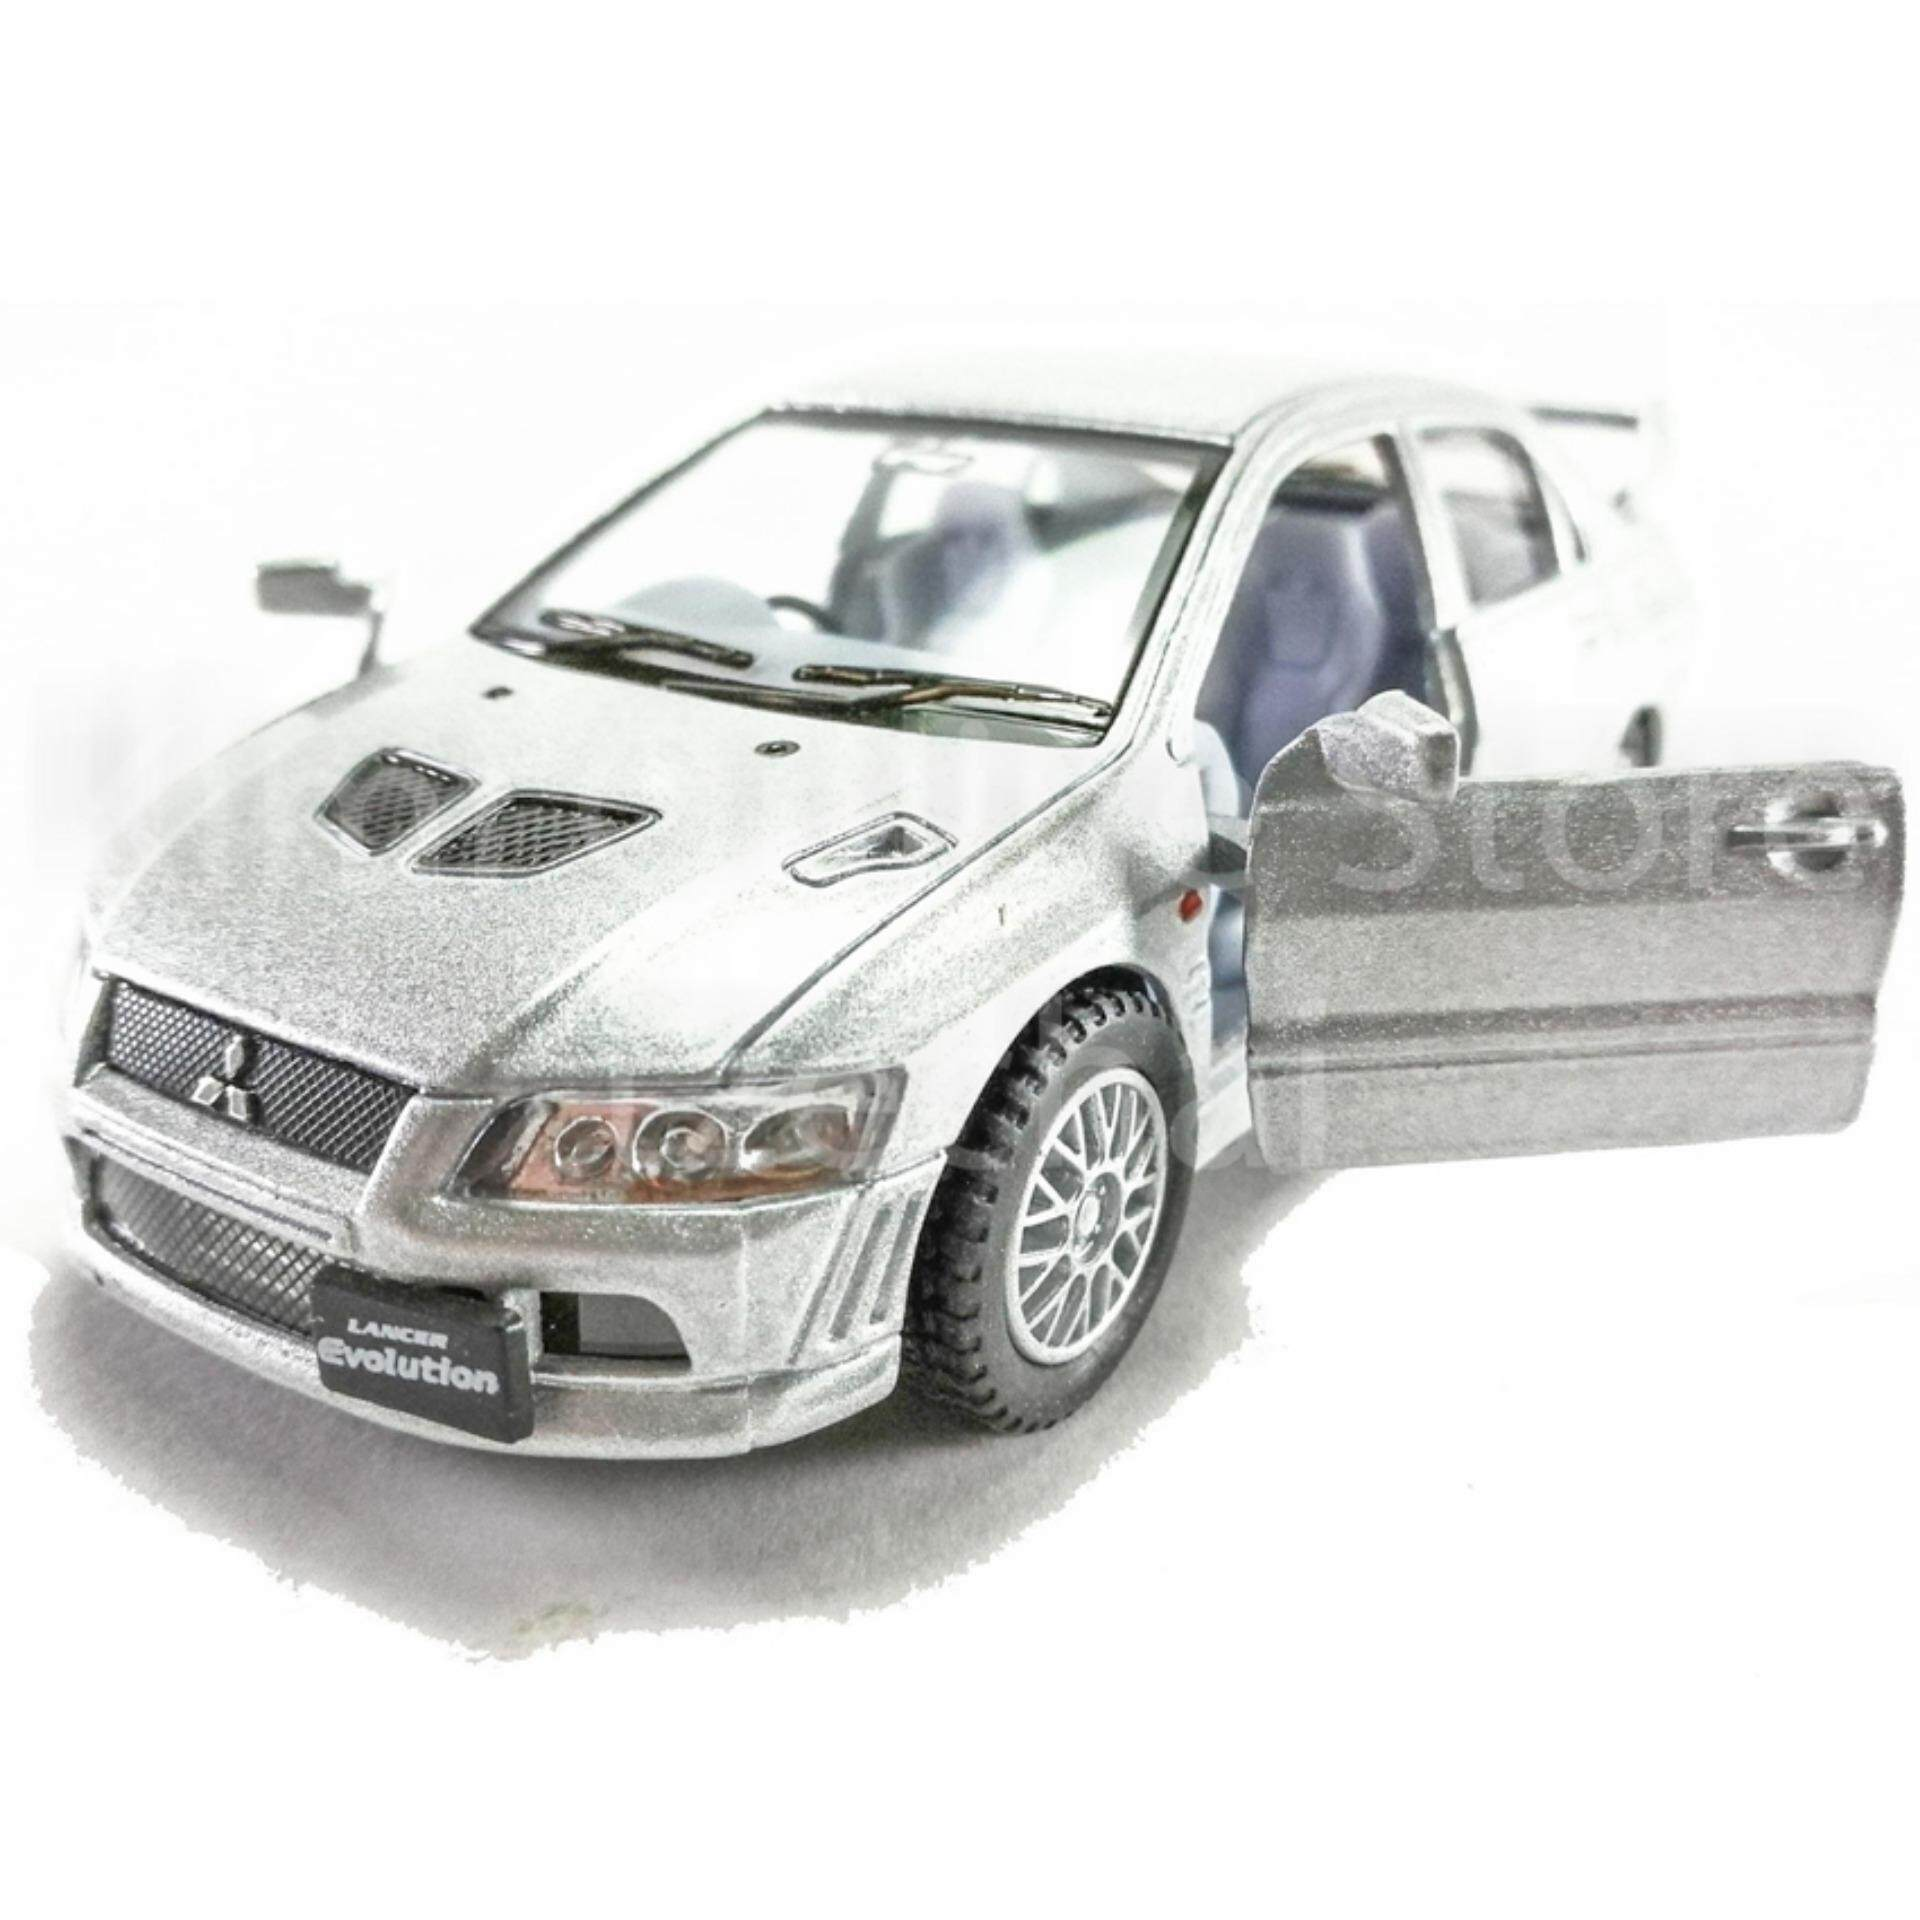 Sell Kinsmart Diecast Mitsubishi Cheapest Best Quality My Store Tomica Premium 18 Gto Twin Turbo